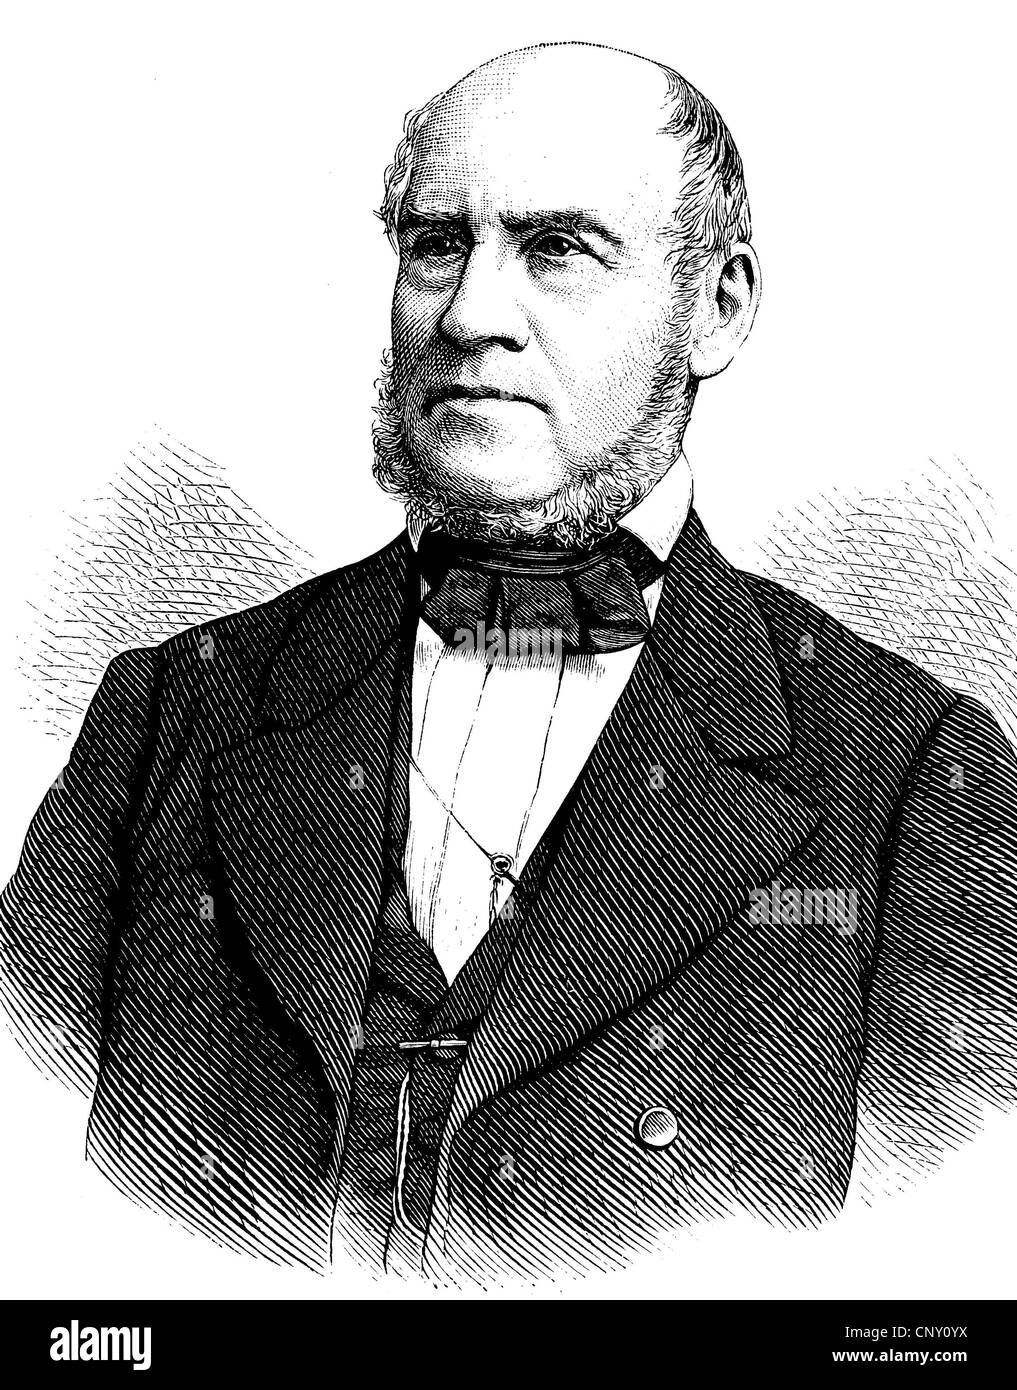 August Reichensperger, 1808 - 1895, a German lawyer, politician and supporter of the construction of the Cologne - Stock Image